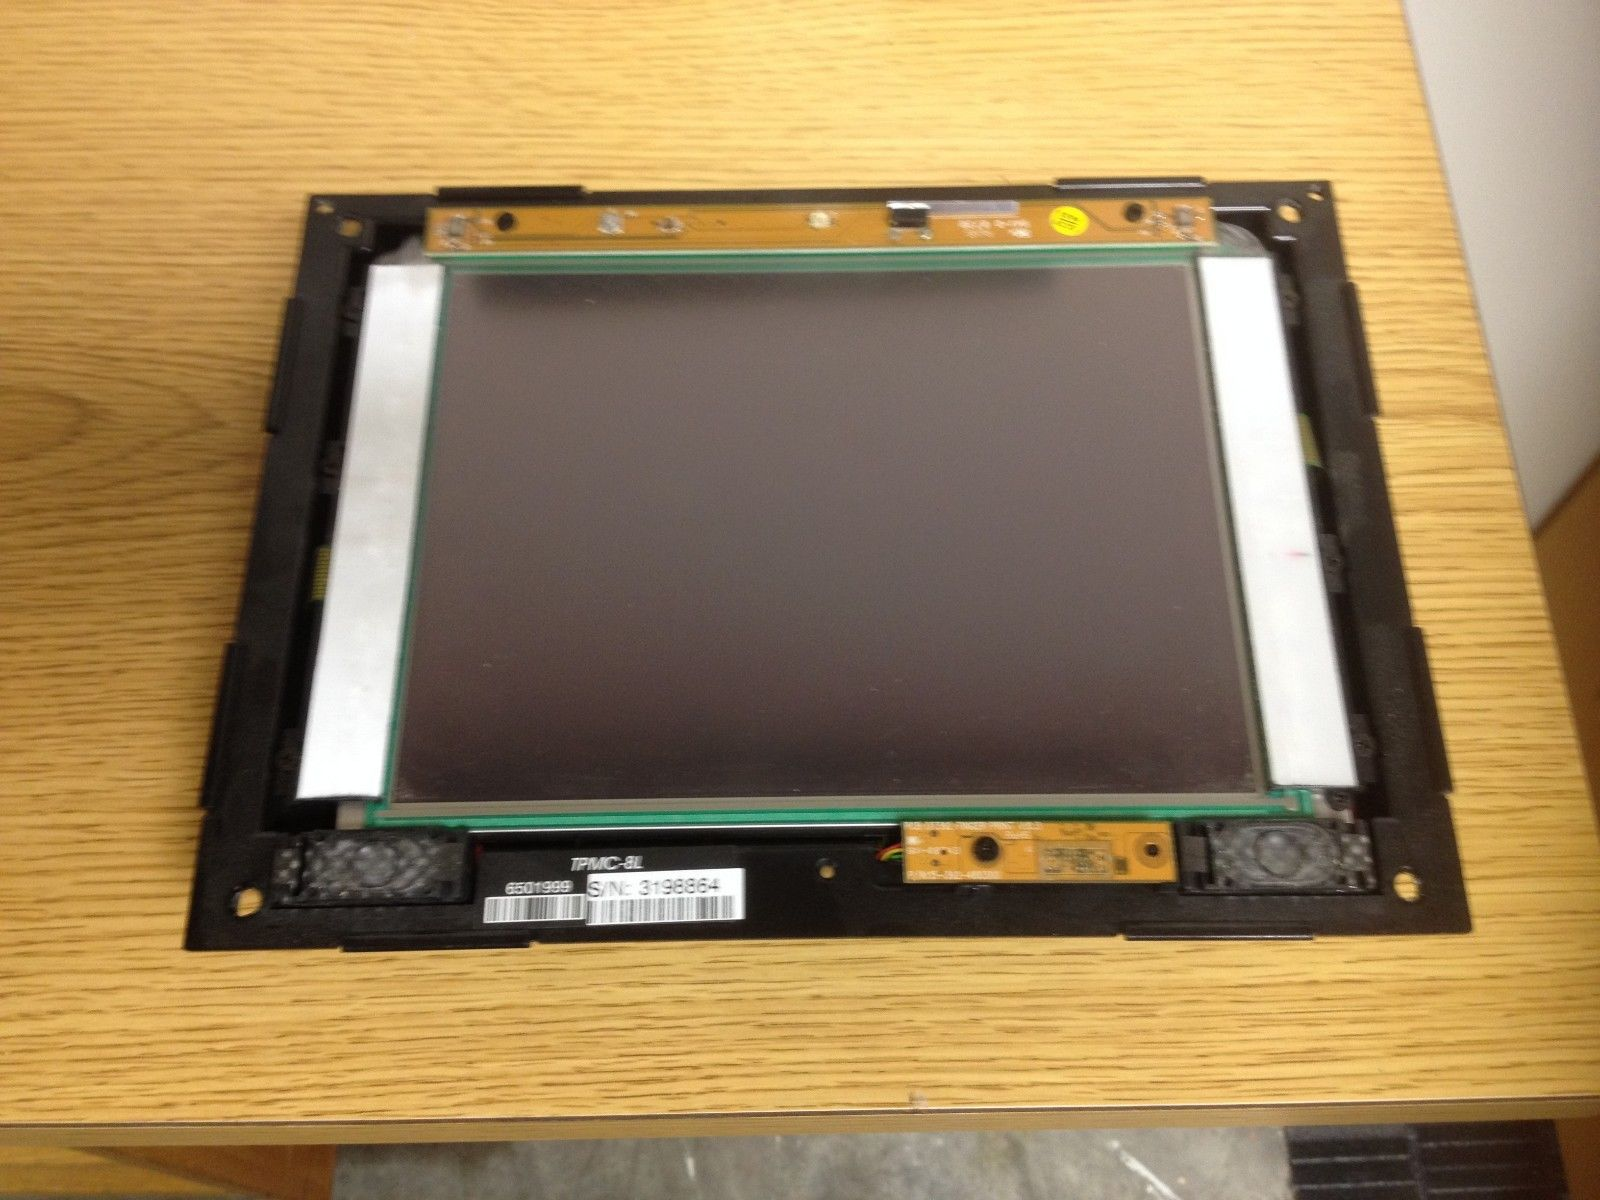 Crestron Tpmc 8l Isys 8 4 Wall Mount Touch Panel No Face